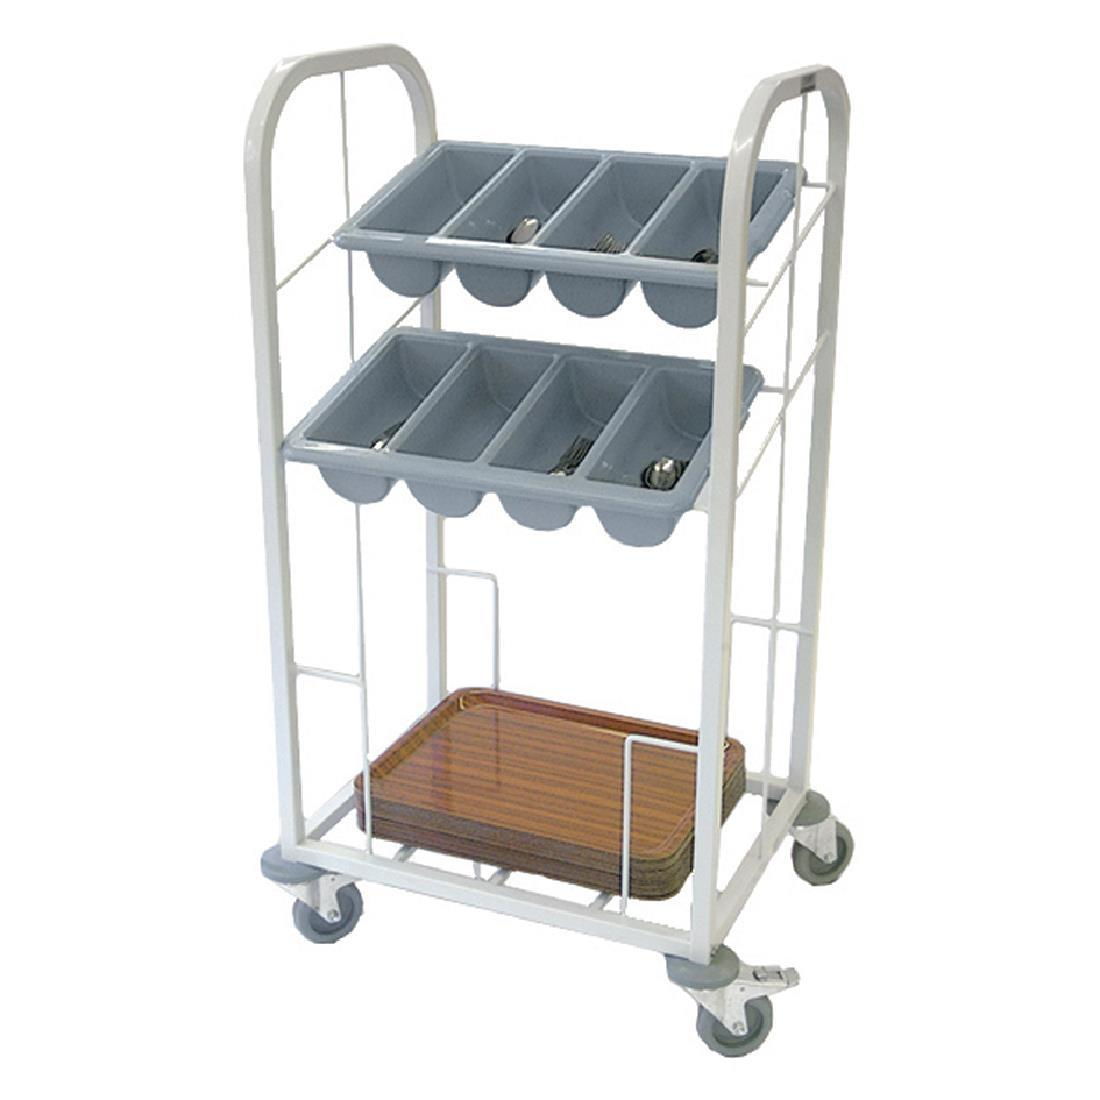 GG139 - Craven Two Tier Cutlery & Tray Dispense Trolley